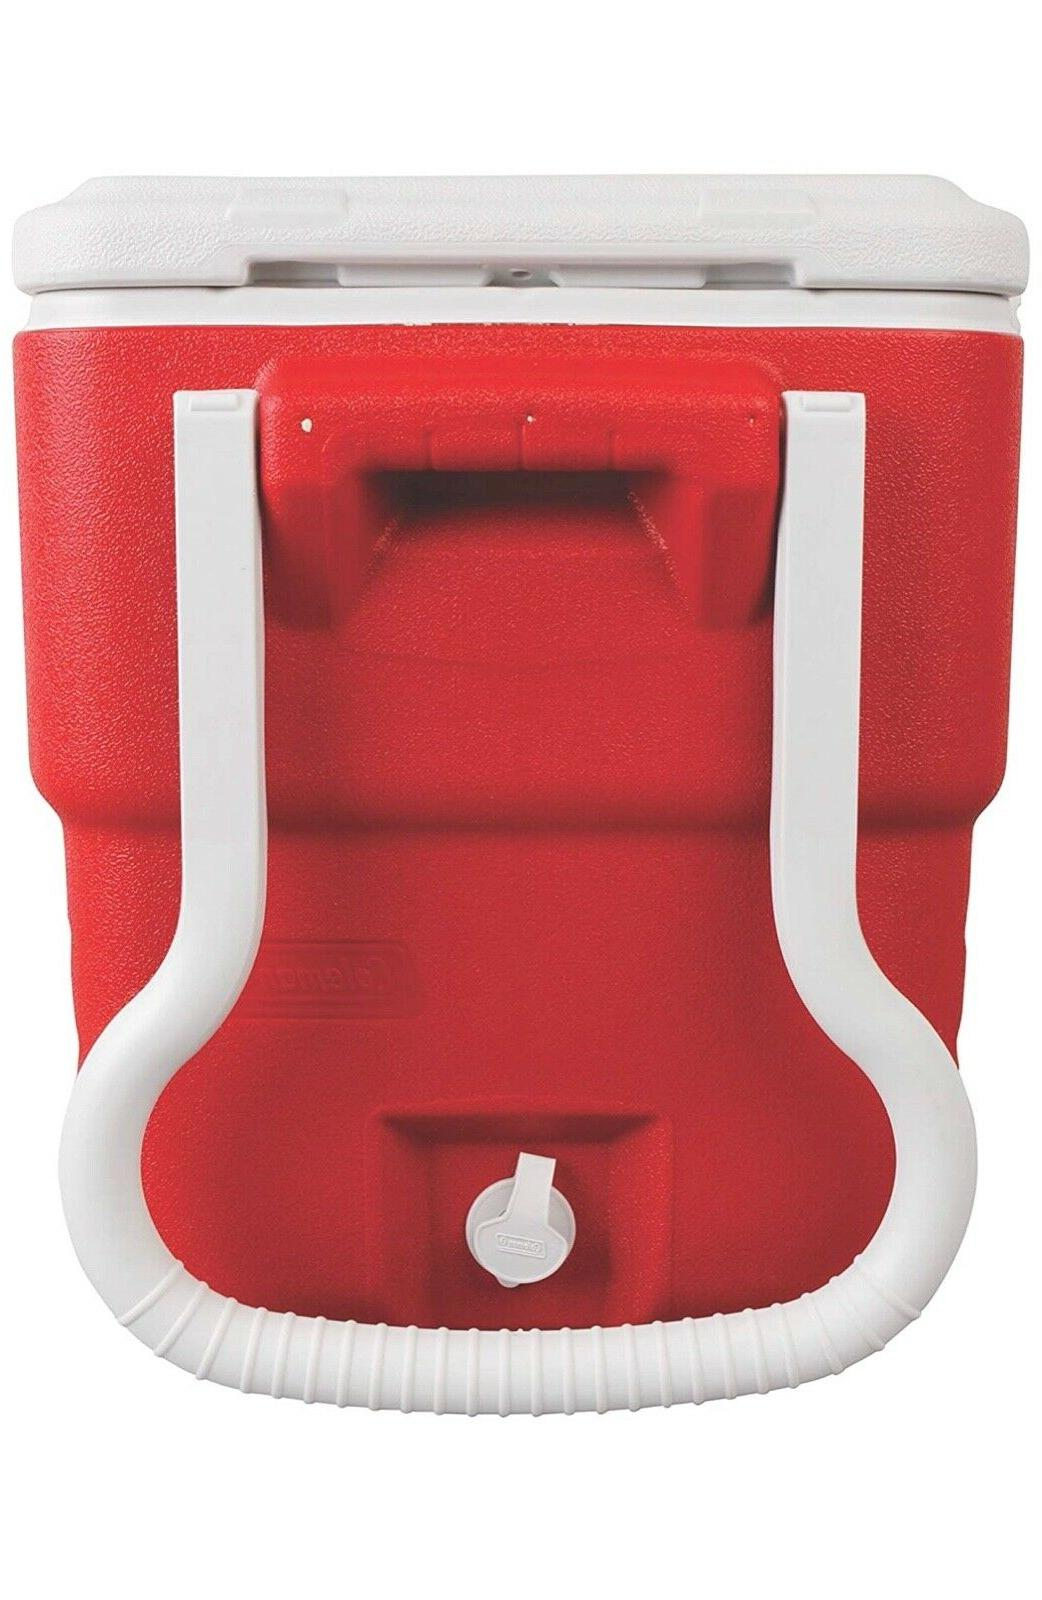 Camping hiking coolers Wheeled Cooler